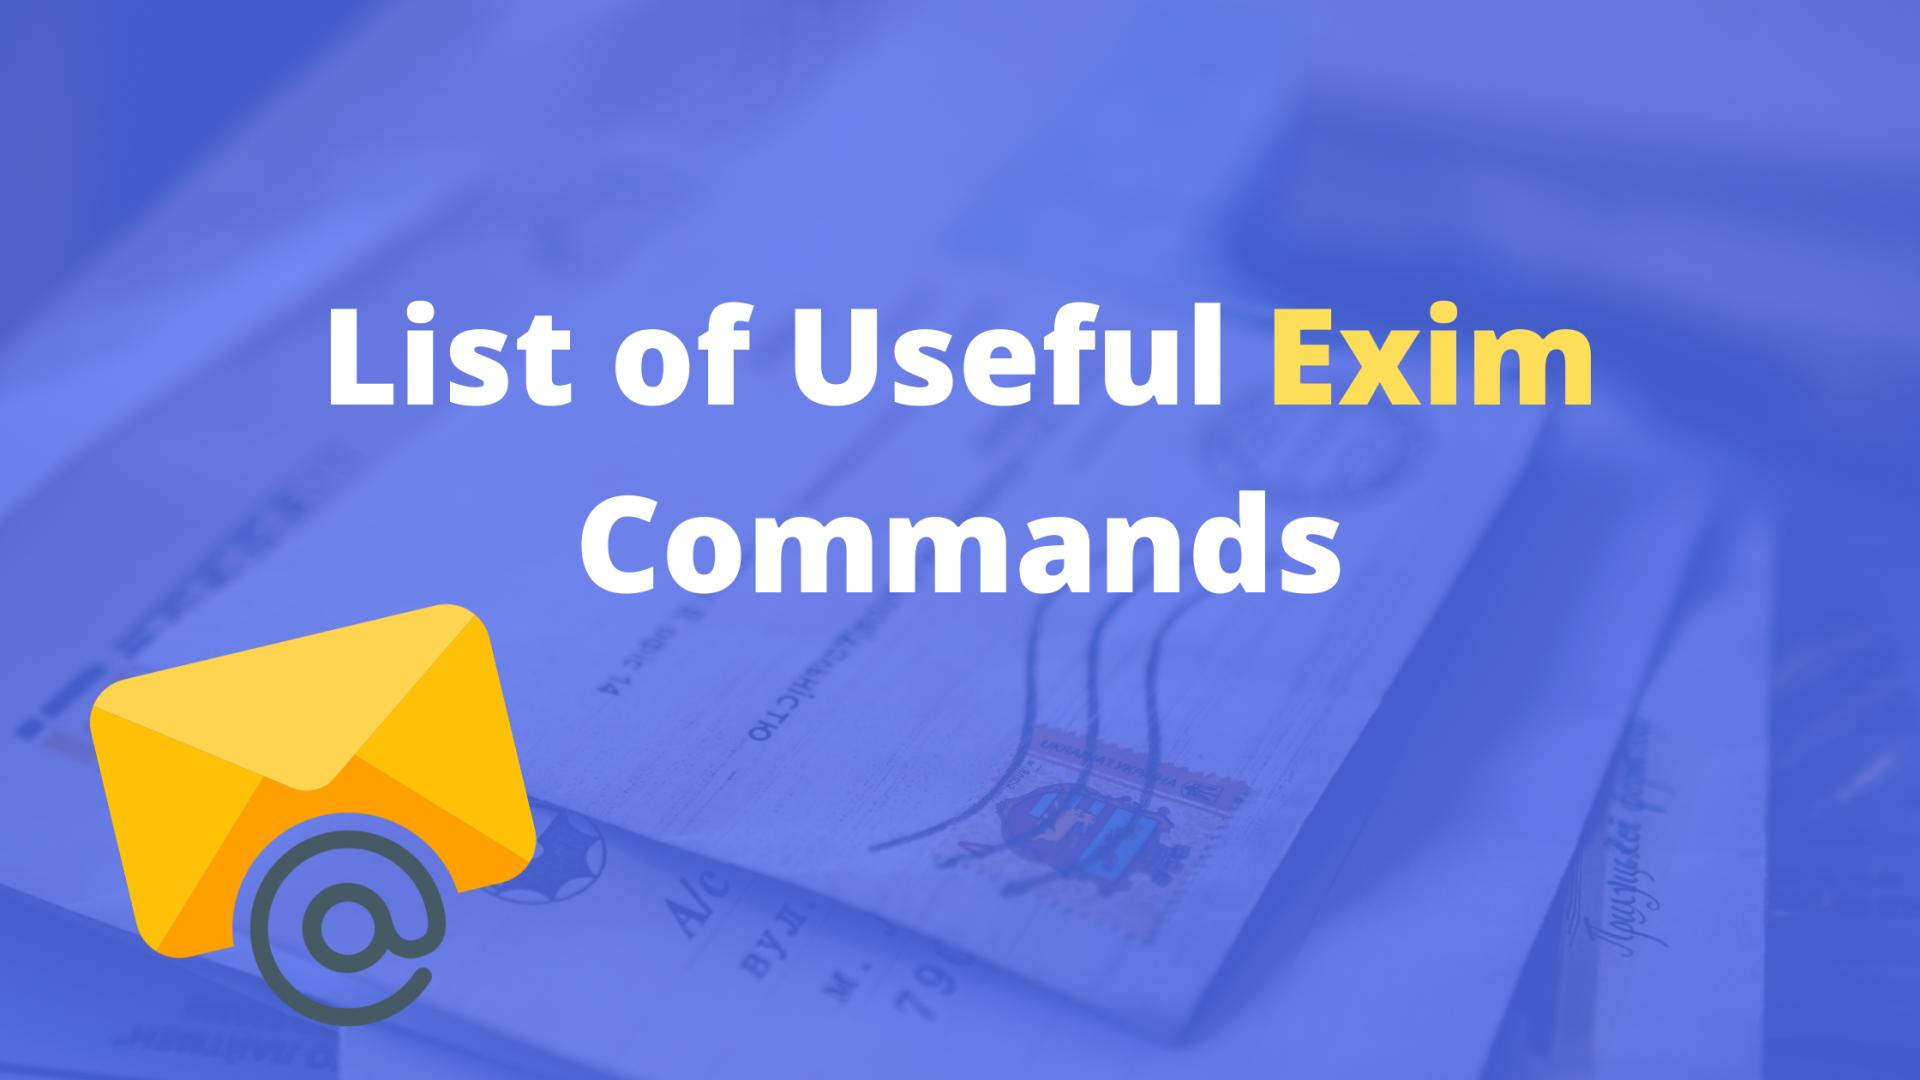 List of Useful Exim Commands